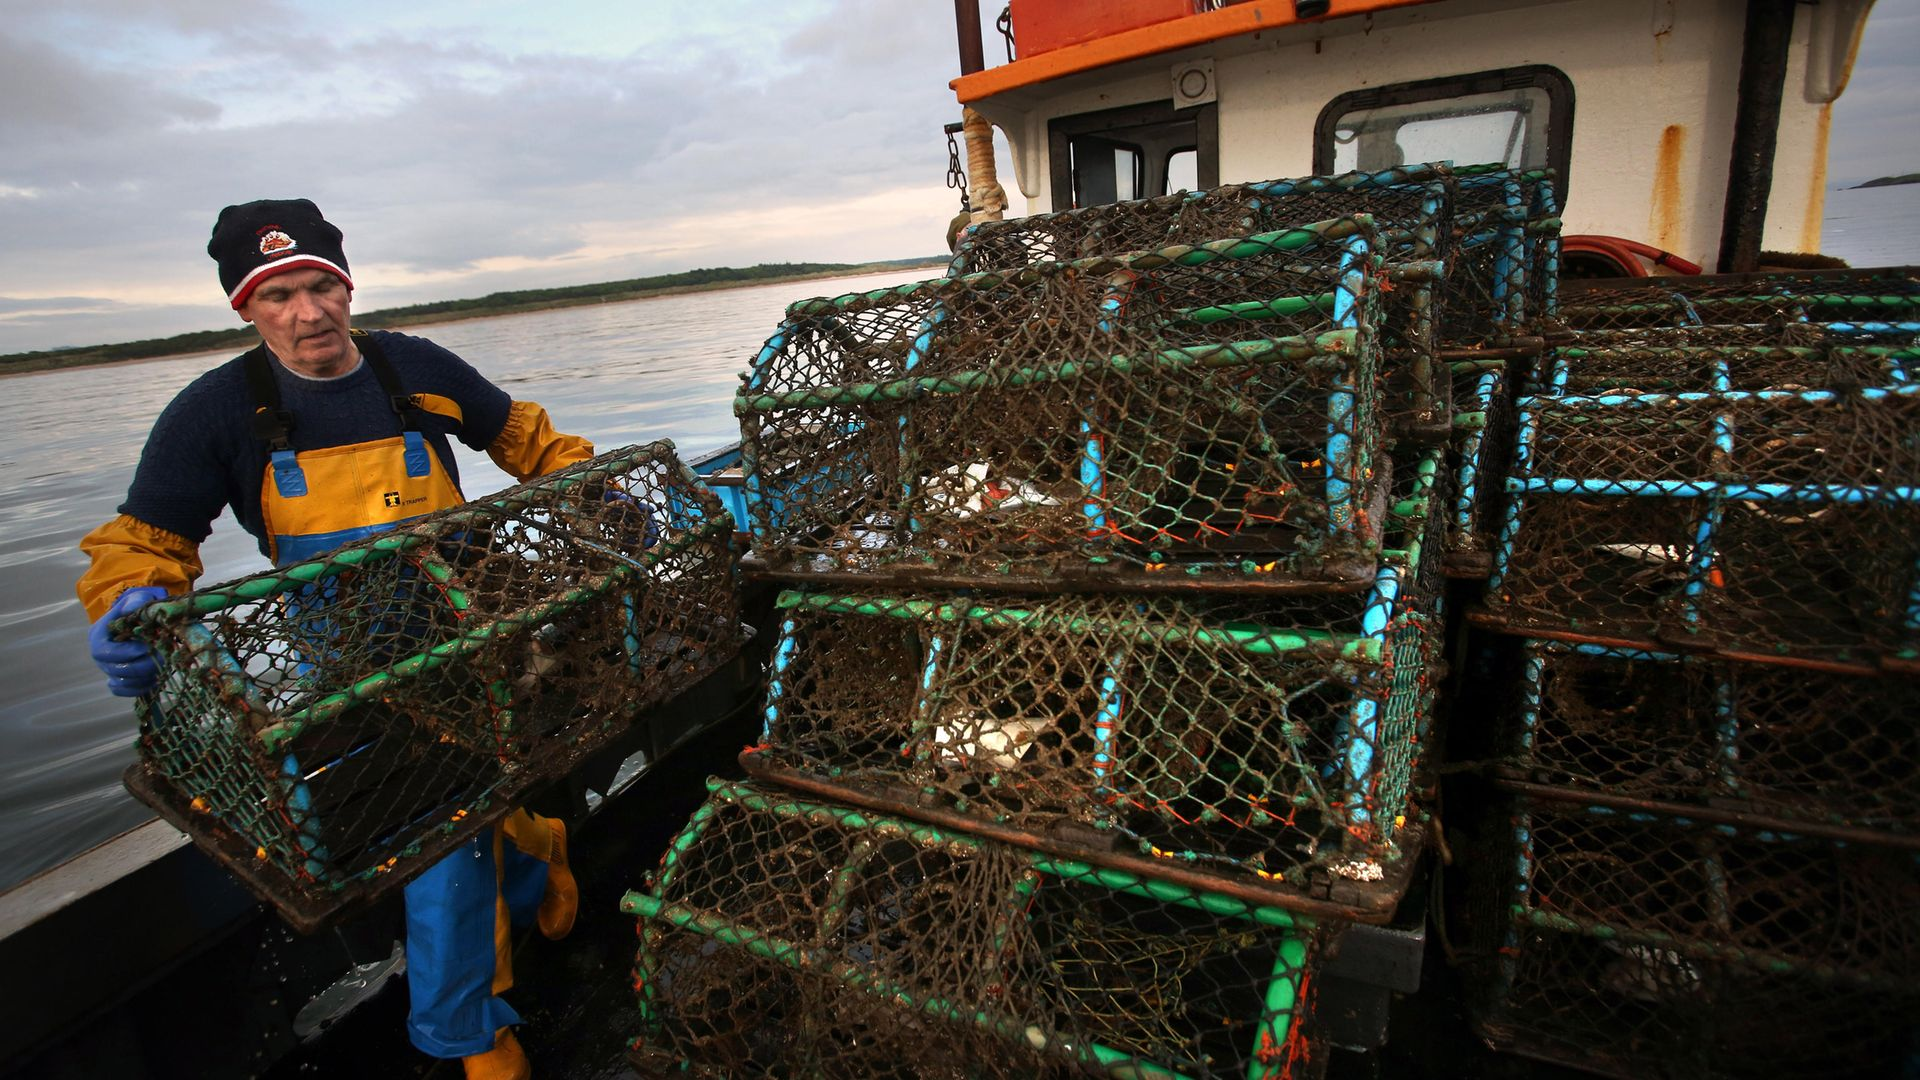 Lobster pots are stacked as Scottish inshore fishermen work off the east coast of Scotland, near Bass rock. - Credit: PA